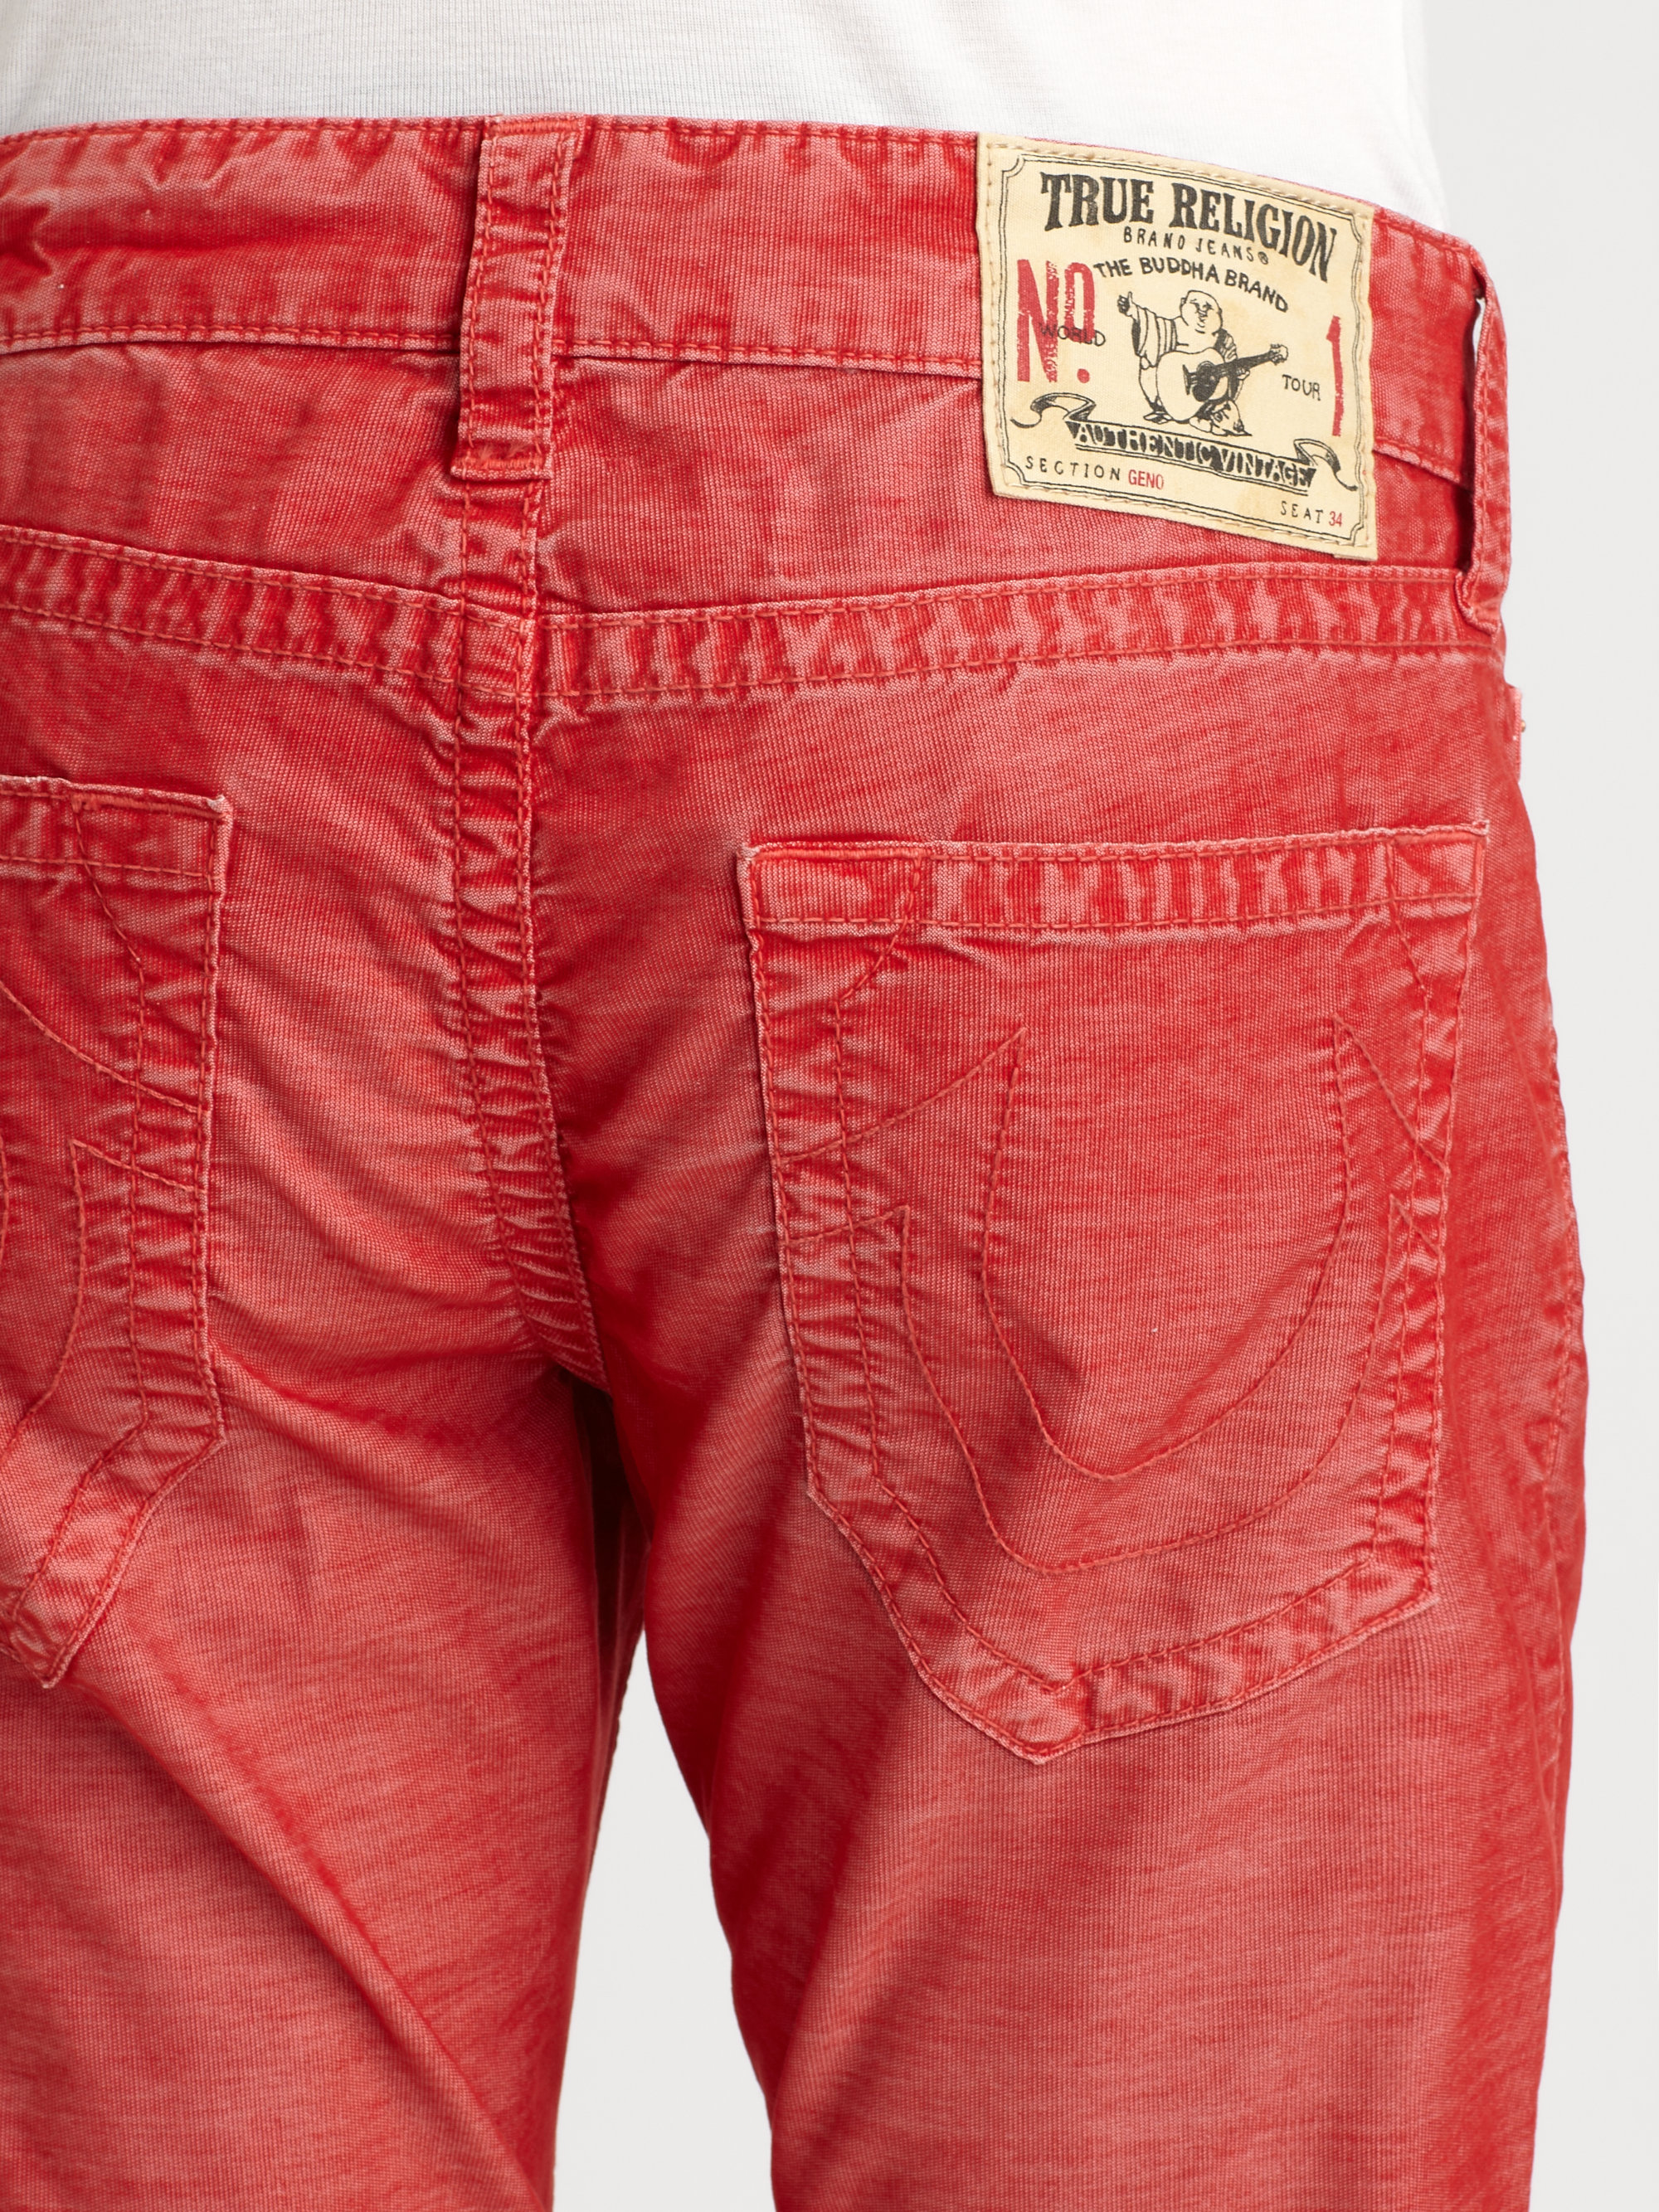 83087ab45 True Religion Geno Corduroy Pant in Red for Men - Lyst